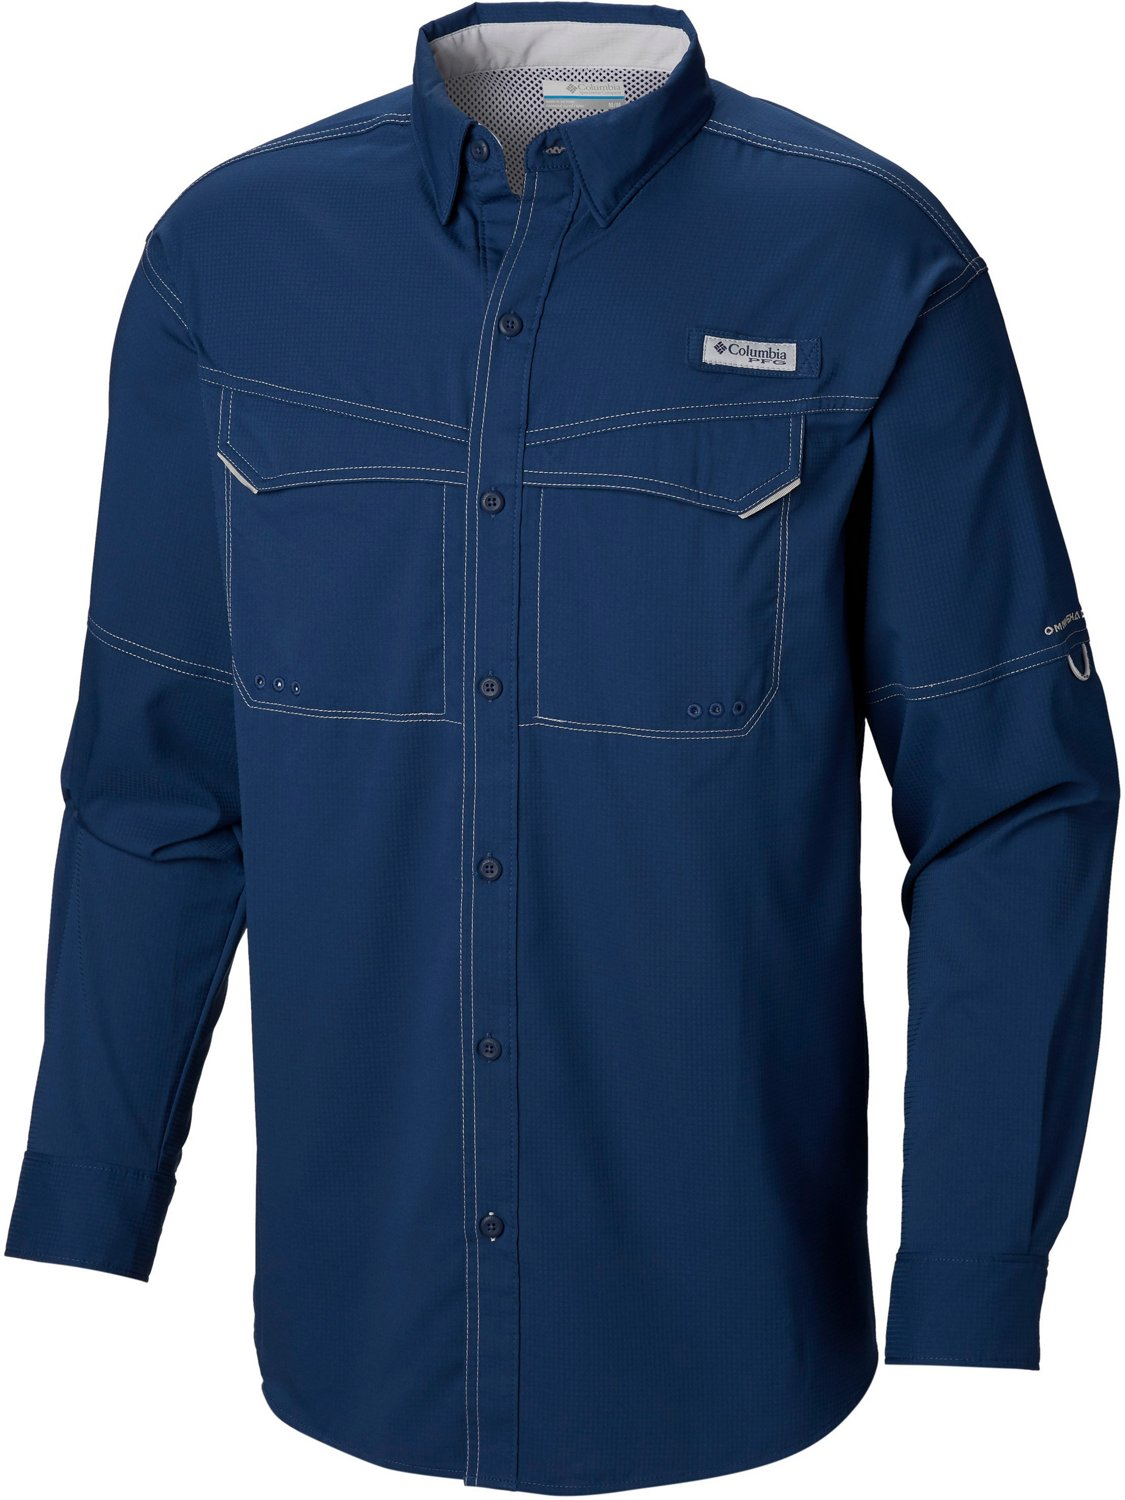 9295bc16c15 Columbia Sportswear Men's Low Drag Offshore Long Sleeve Shirt | Academy